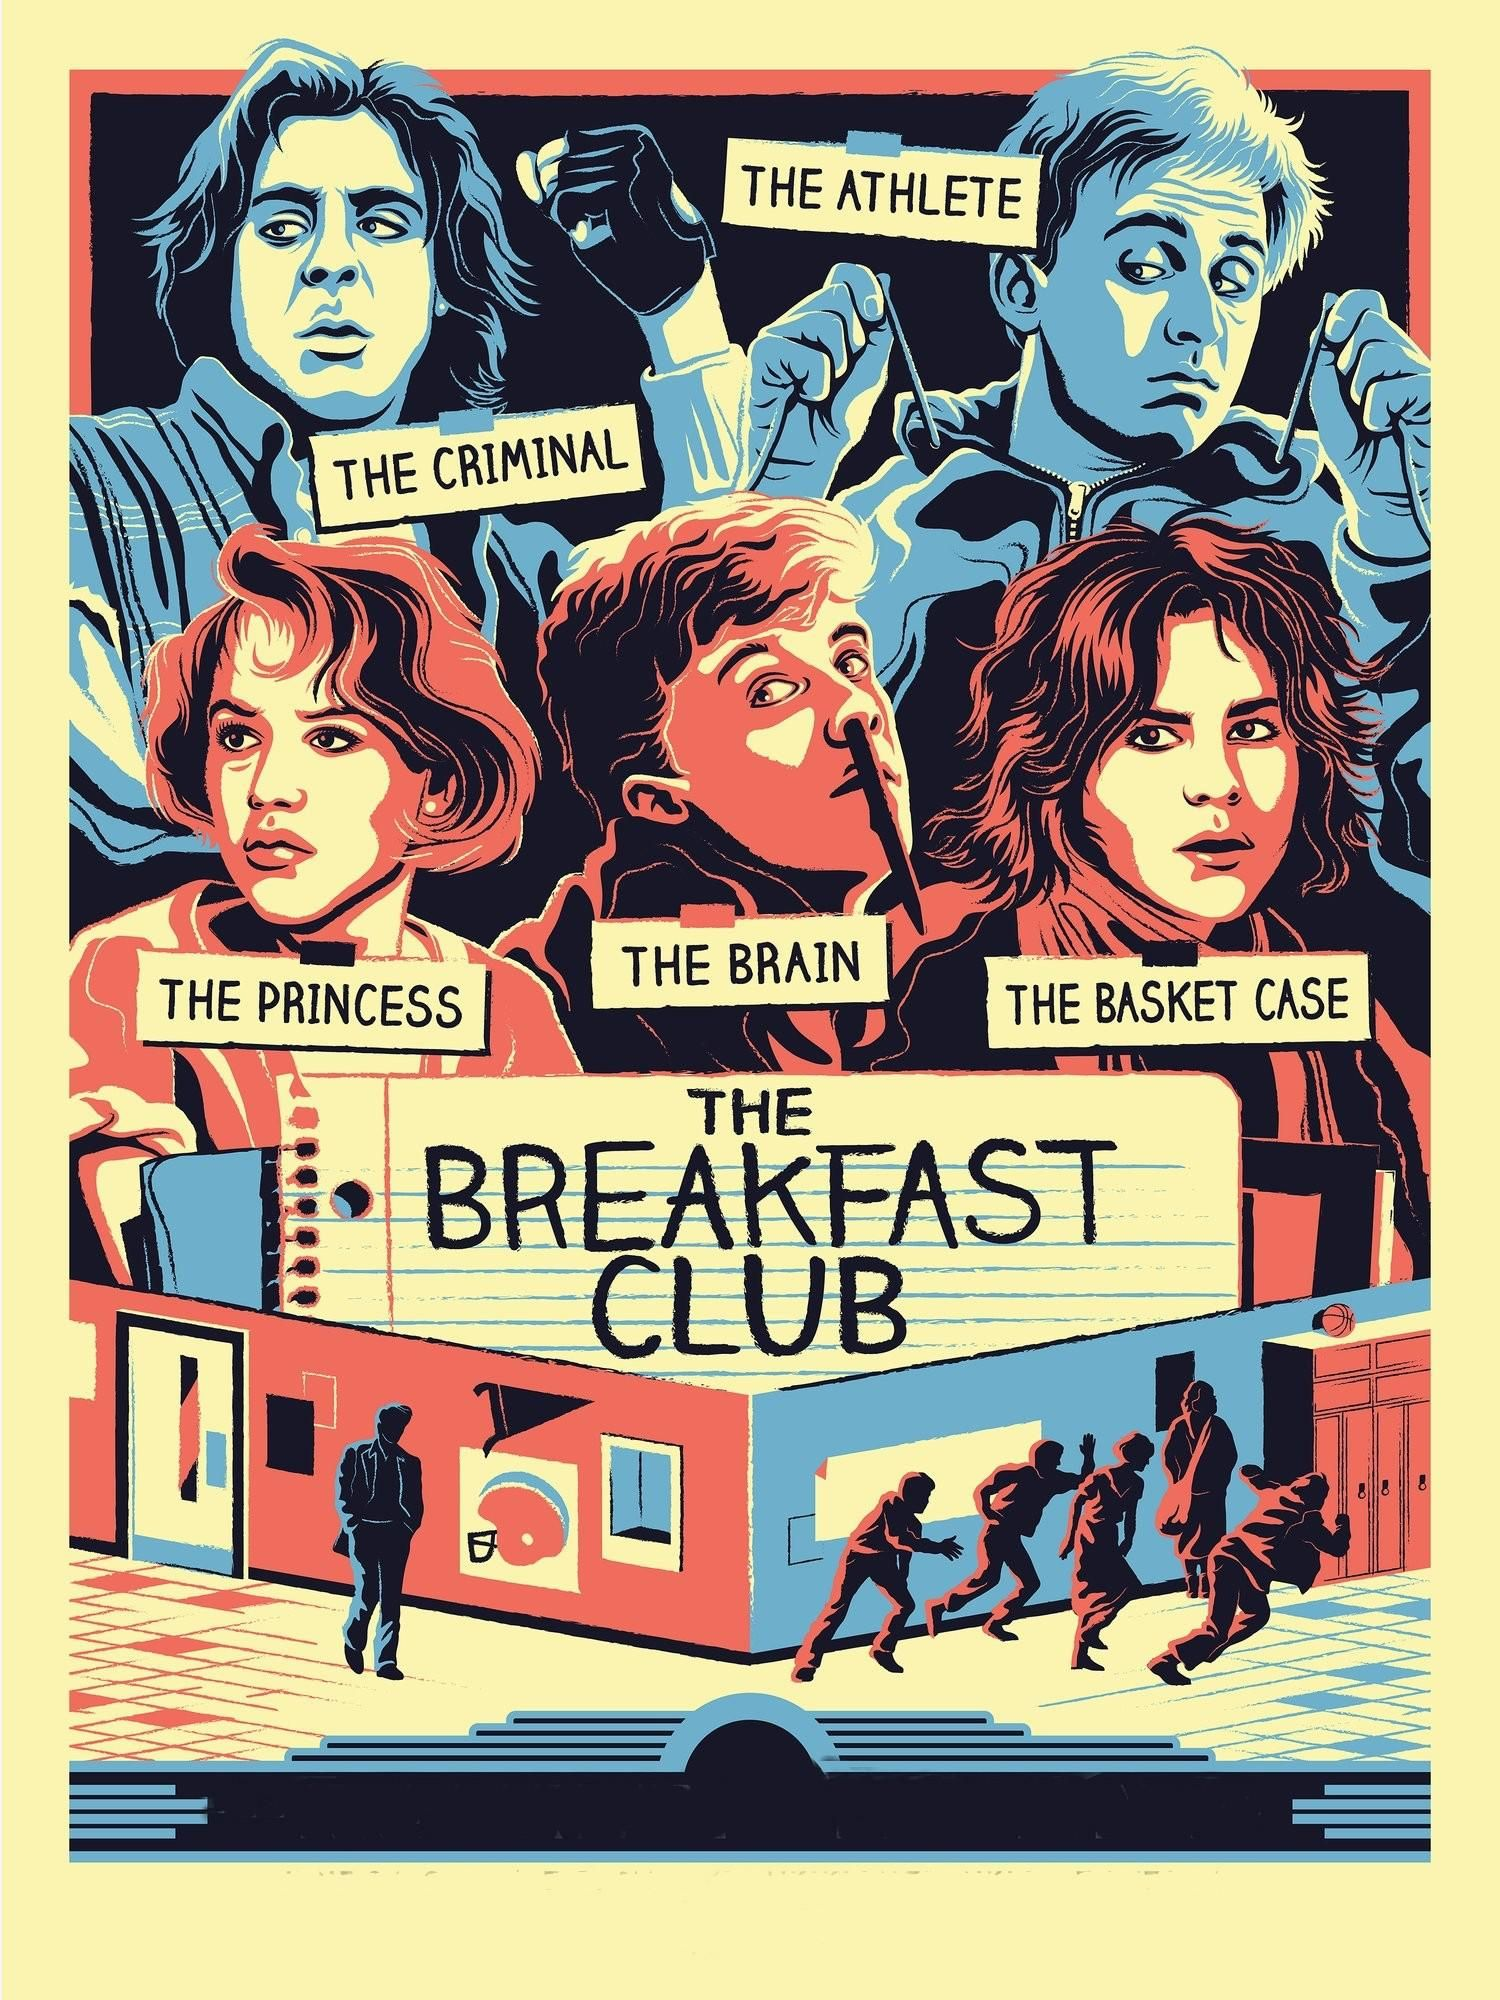 The Breakfast Club 1985 1500 2000 By Ryan Brinkerhoff In 2020 Iconic Movie Posters Film Posters Vintage Movie Poster Wall